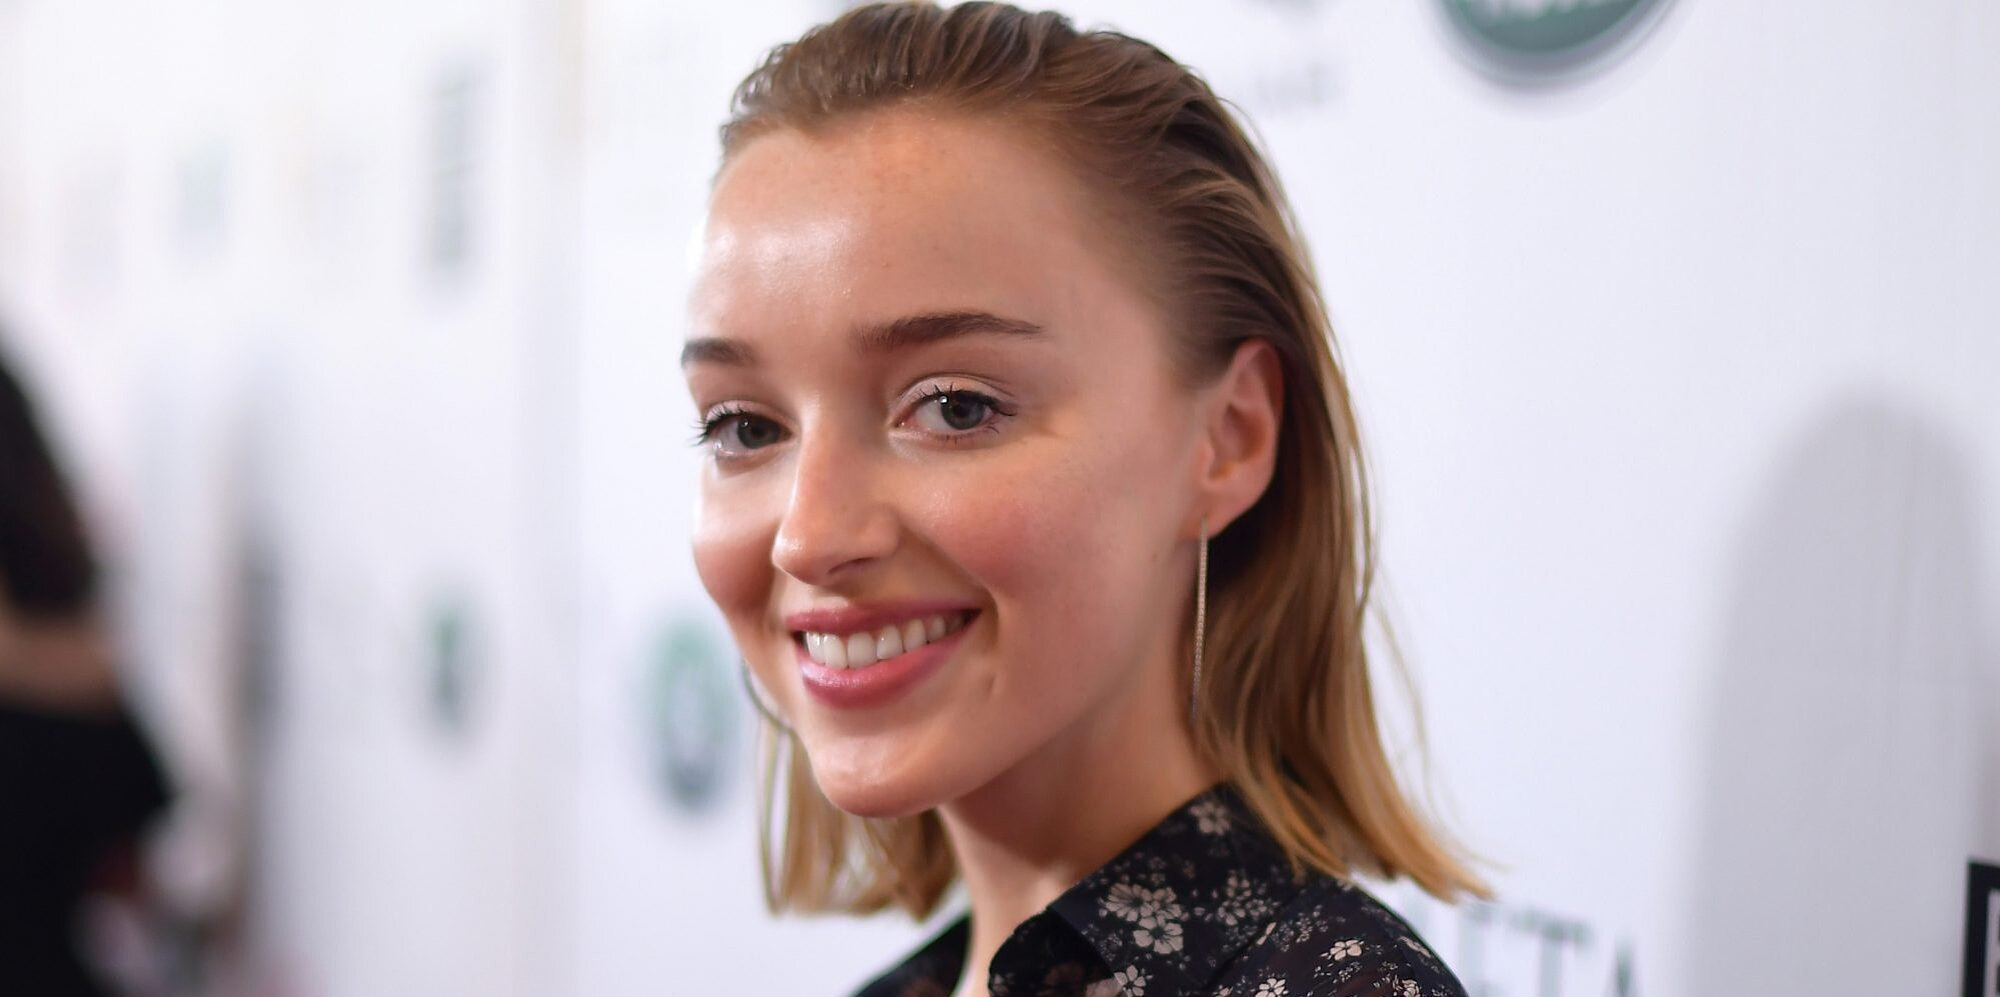 Phoebe Dynevor Got a Spicy New Haircut and Color, Plus Curtain Bangs, of Course